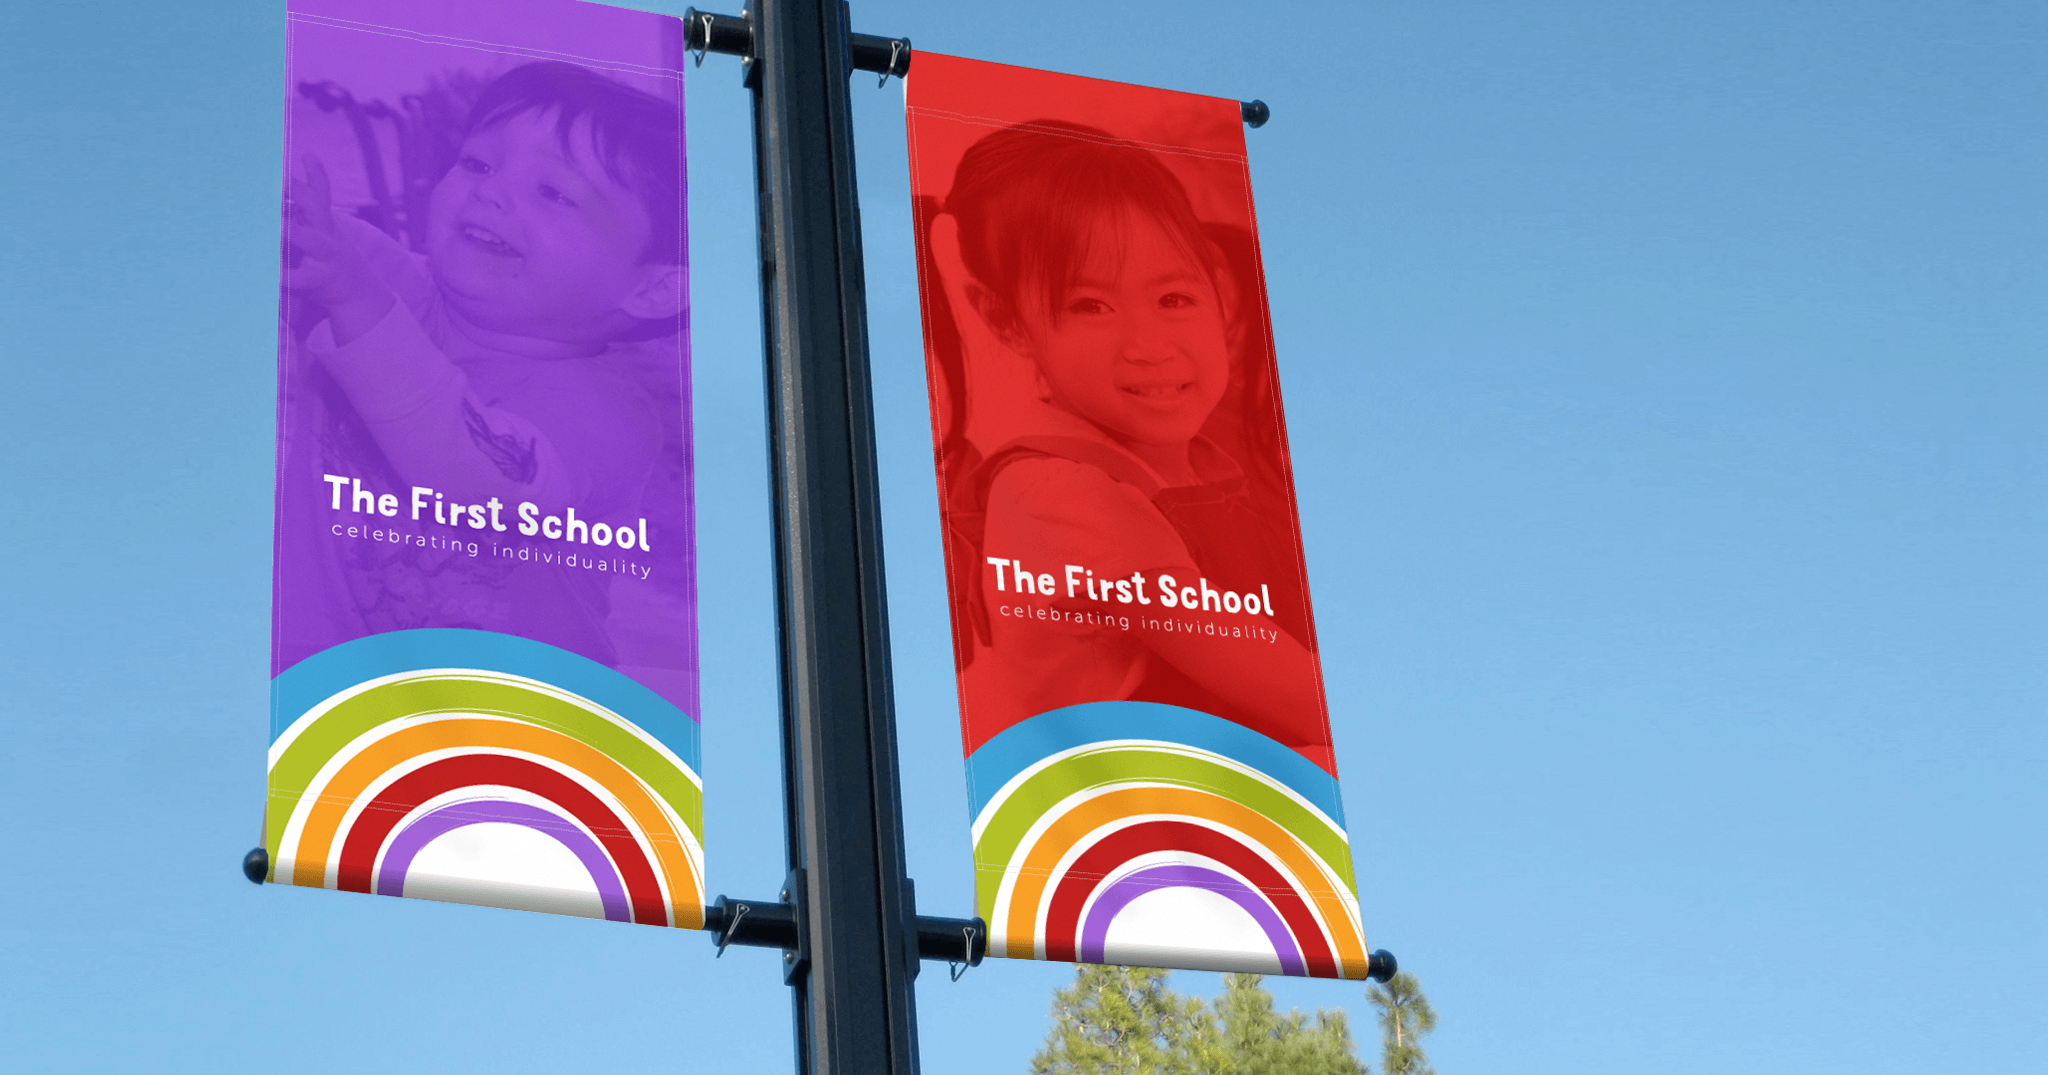 The First School flags